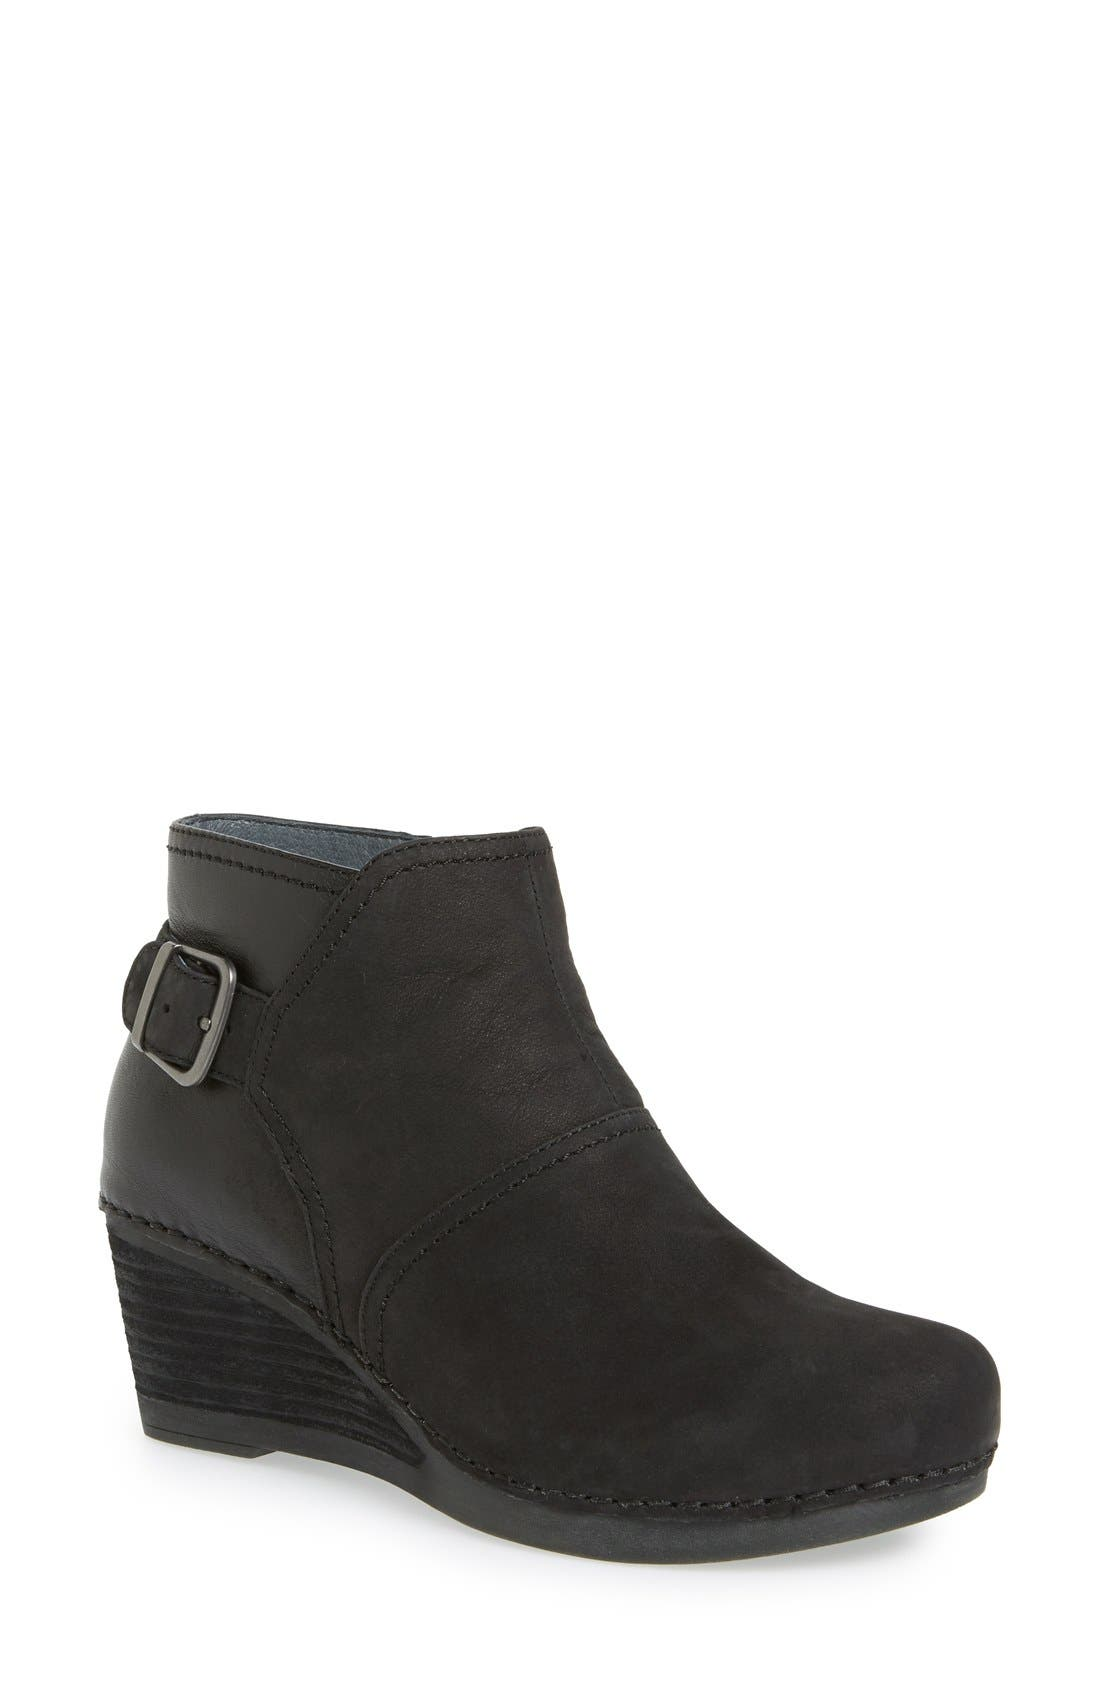 'Shirley' Wedge Bootie,                         Main,                         color, 001